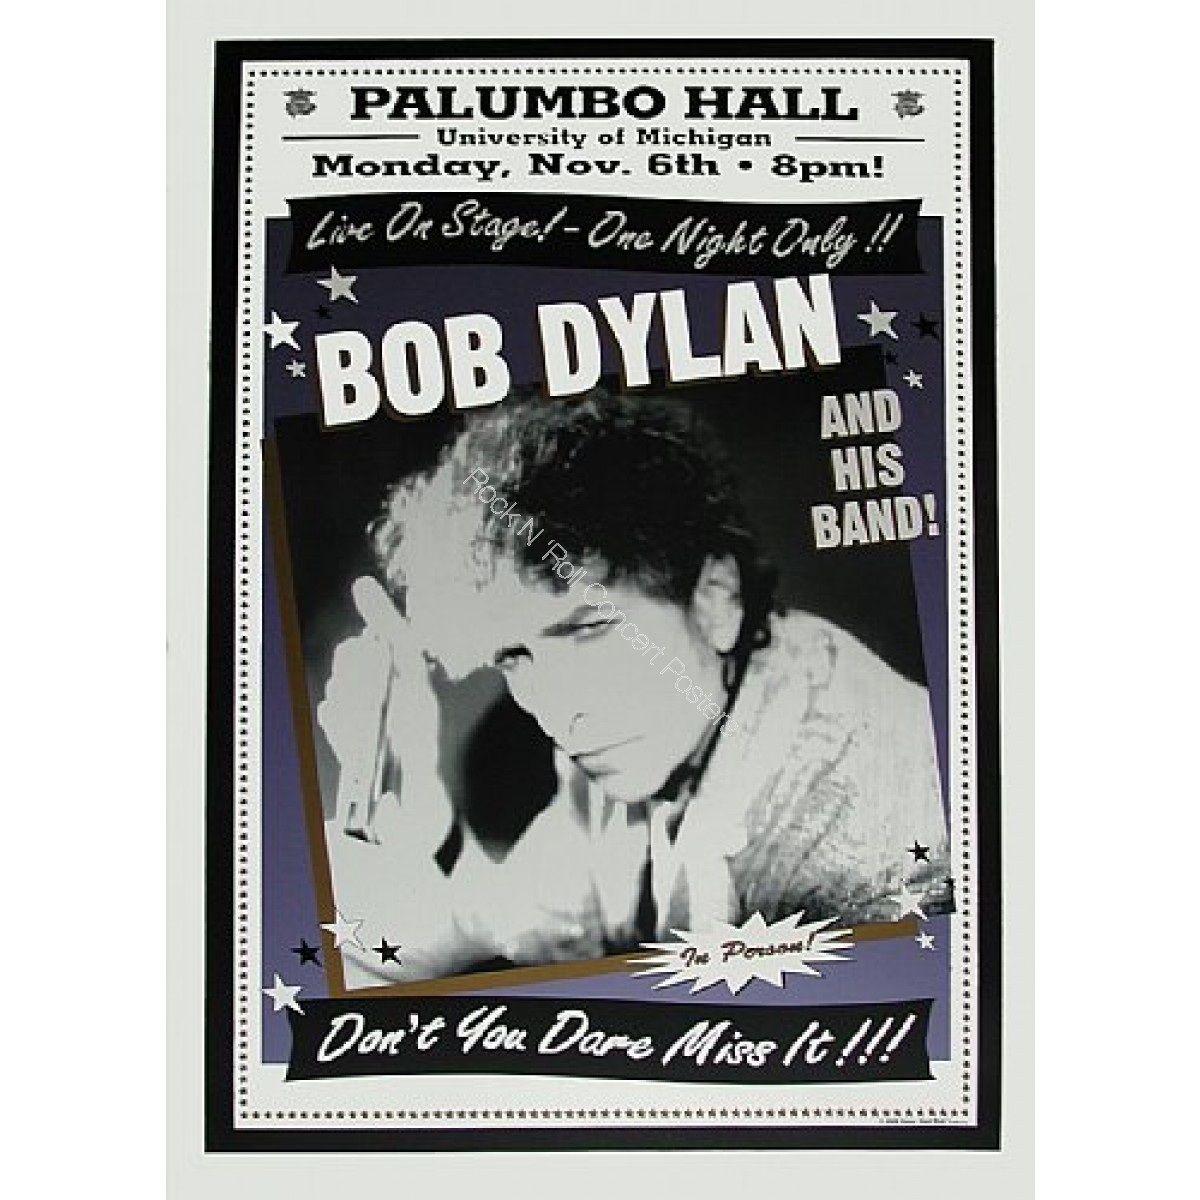 Bob Dylan & His Band @ Palumbo Hall U of Mich.